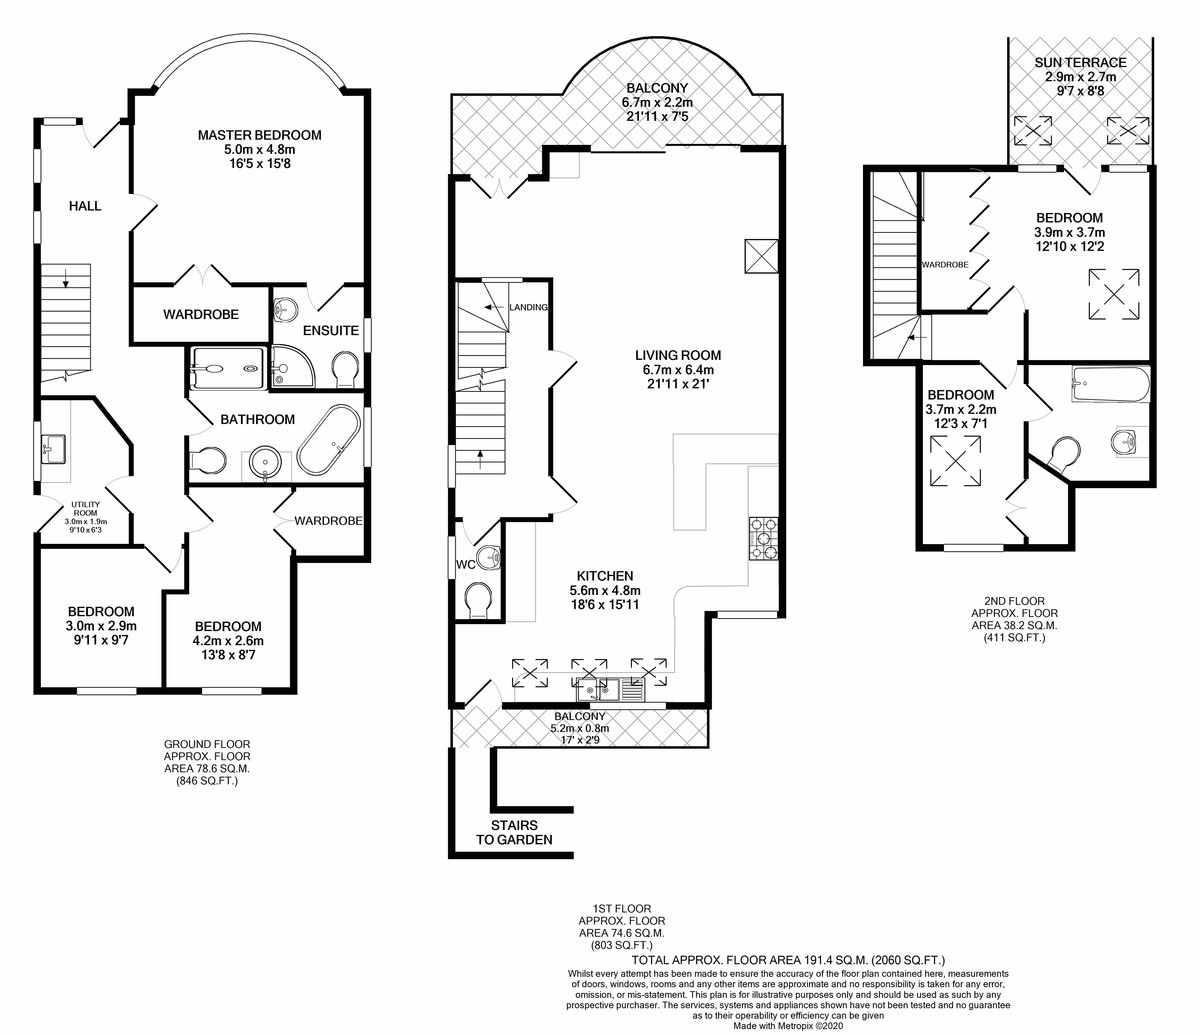 Southbourne Overcliff Drive, Southbourne, Bournemouth, Dorset, BH6 3NP floorplan